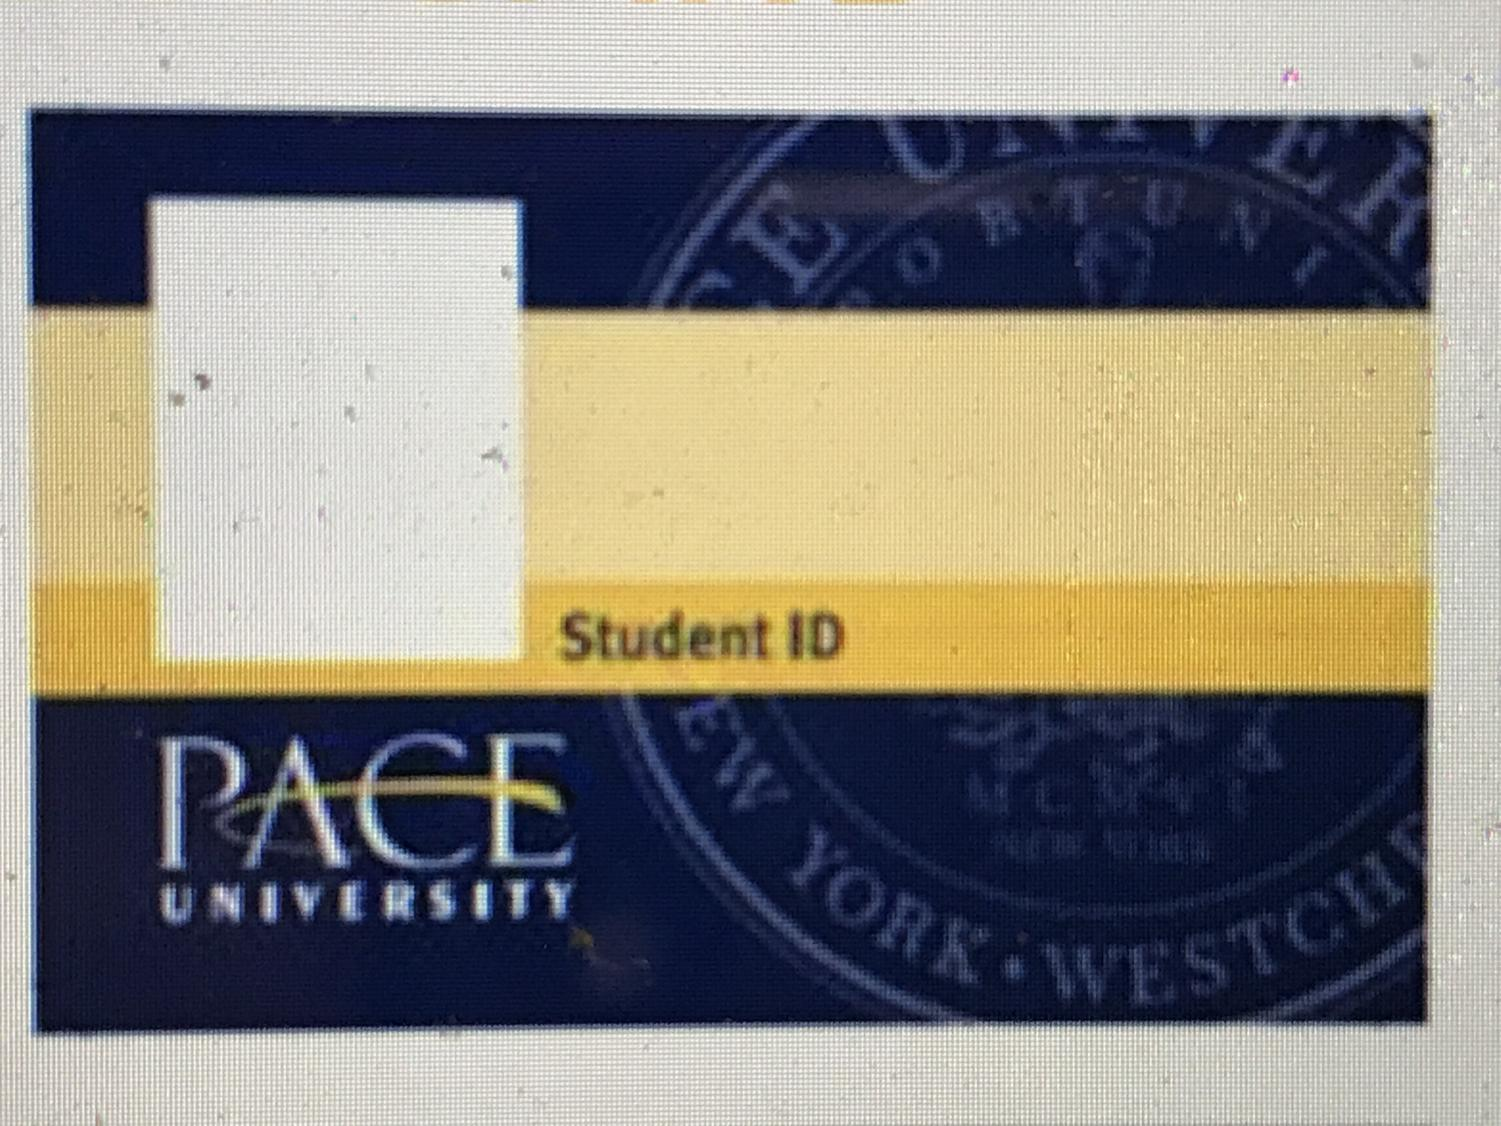 Pace University's One Card. Photo taken by Josiah Darnell